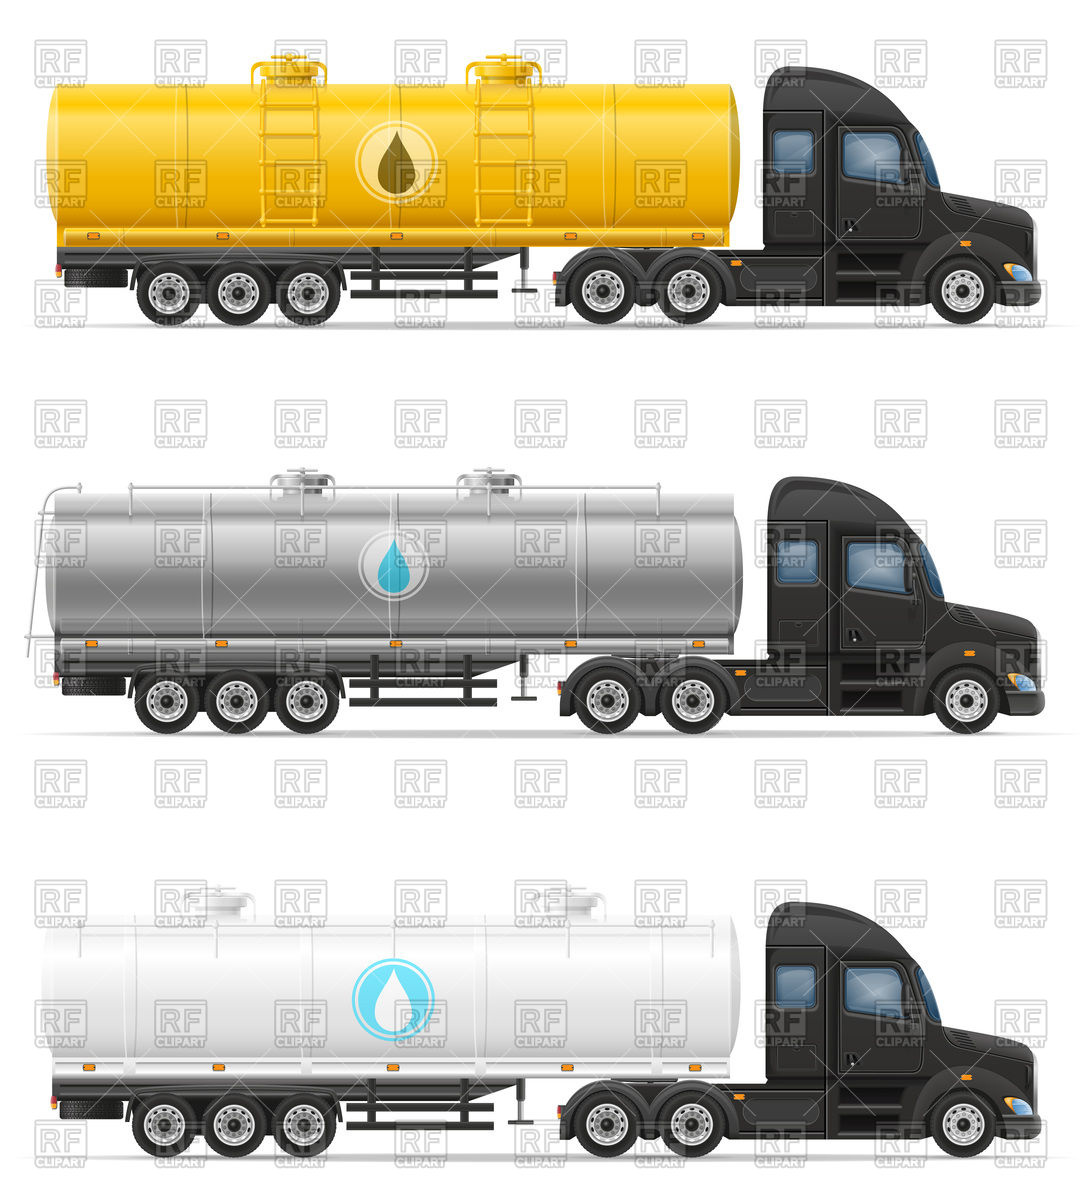 Tank truck for liquid transportation (cistern truck) Vector Image.